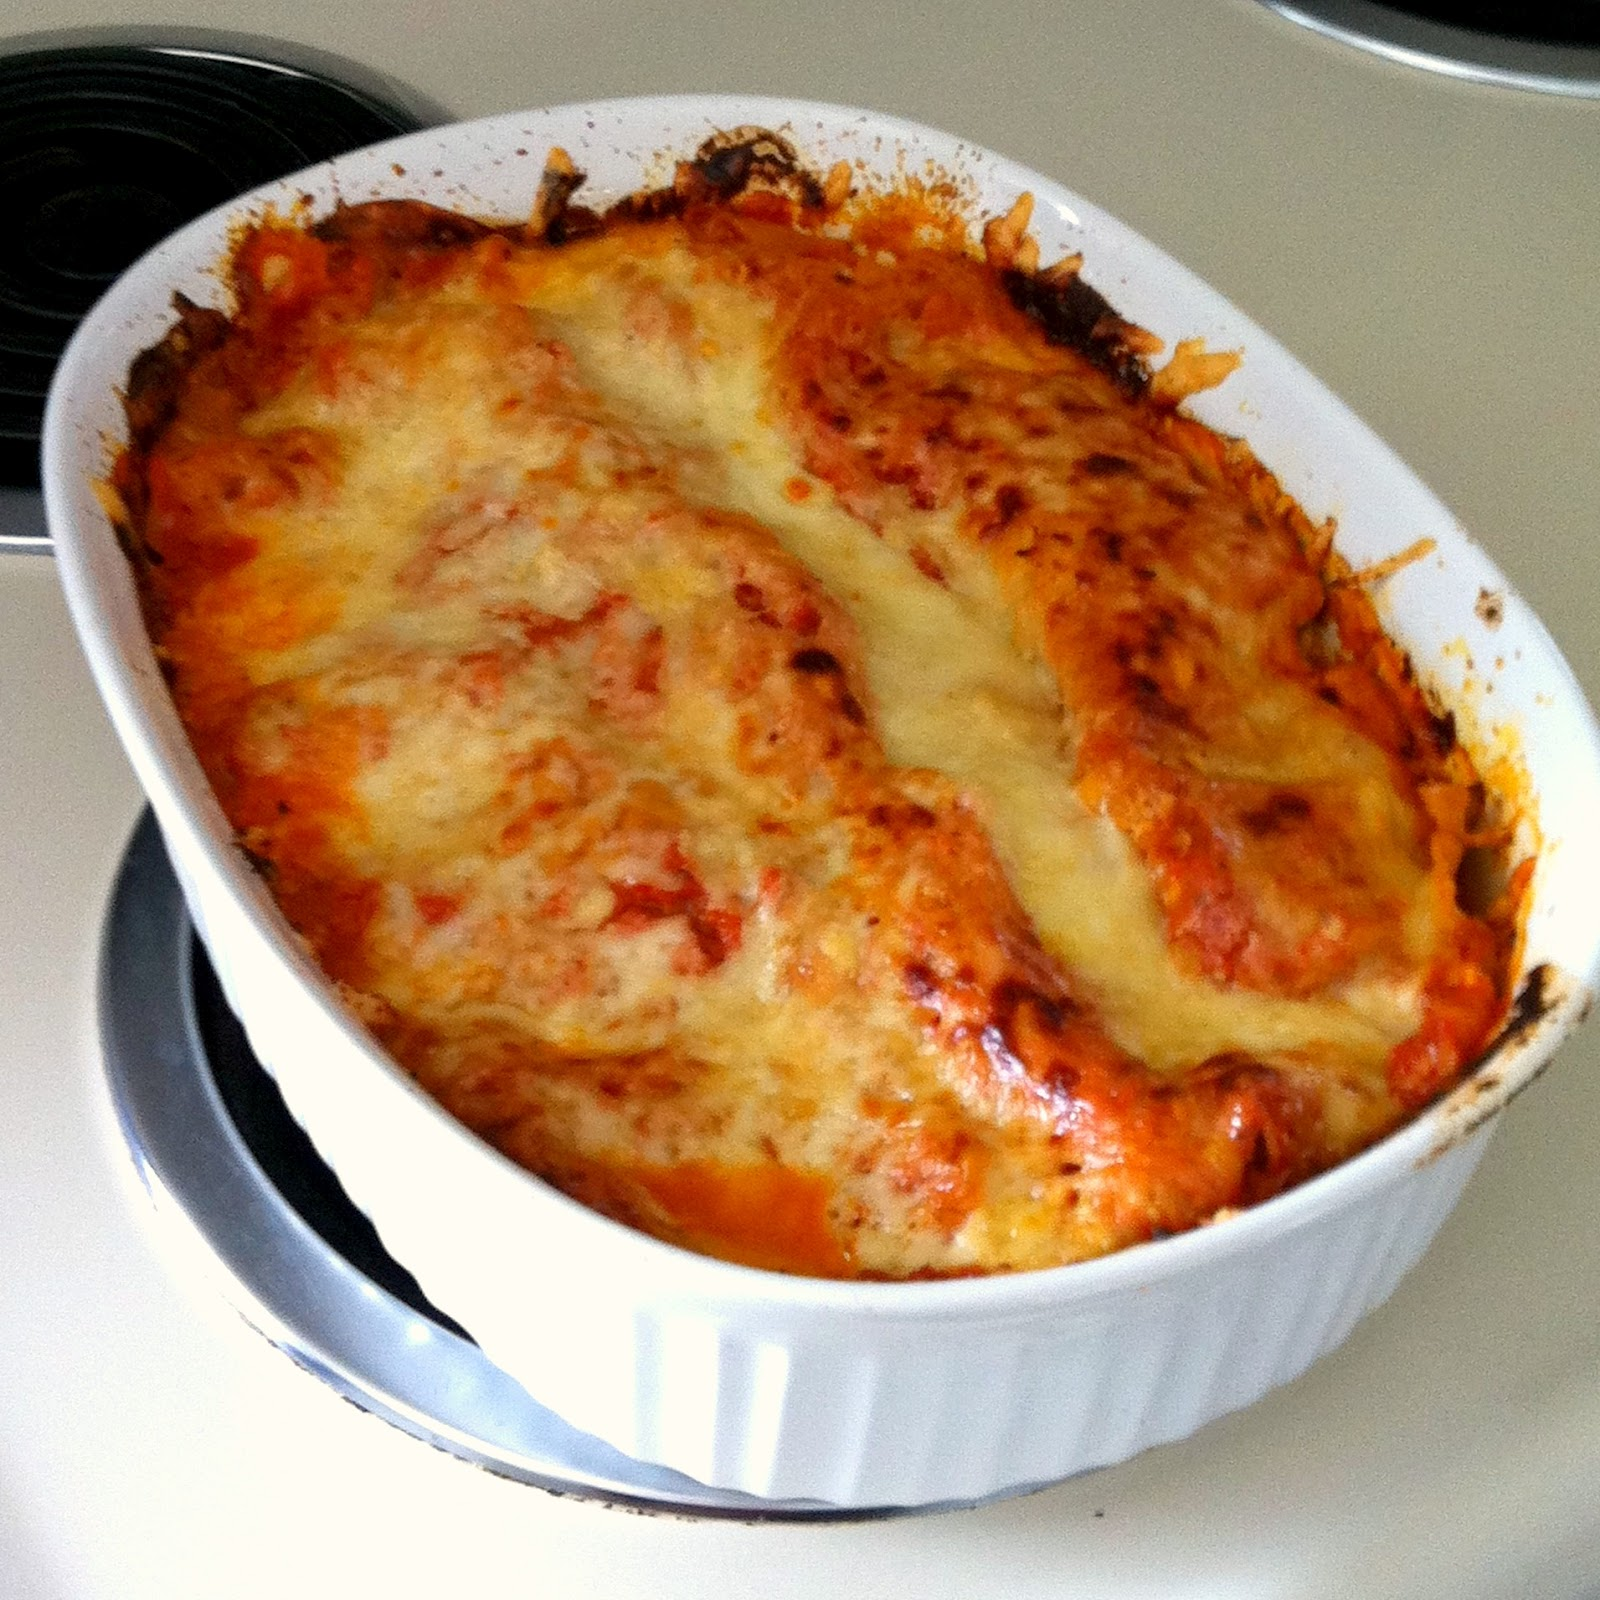 It's Our Pinteresting Life : Broccoli & Three Cheese Lasagna